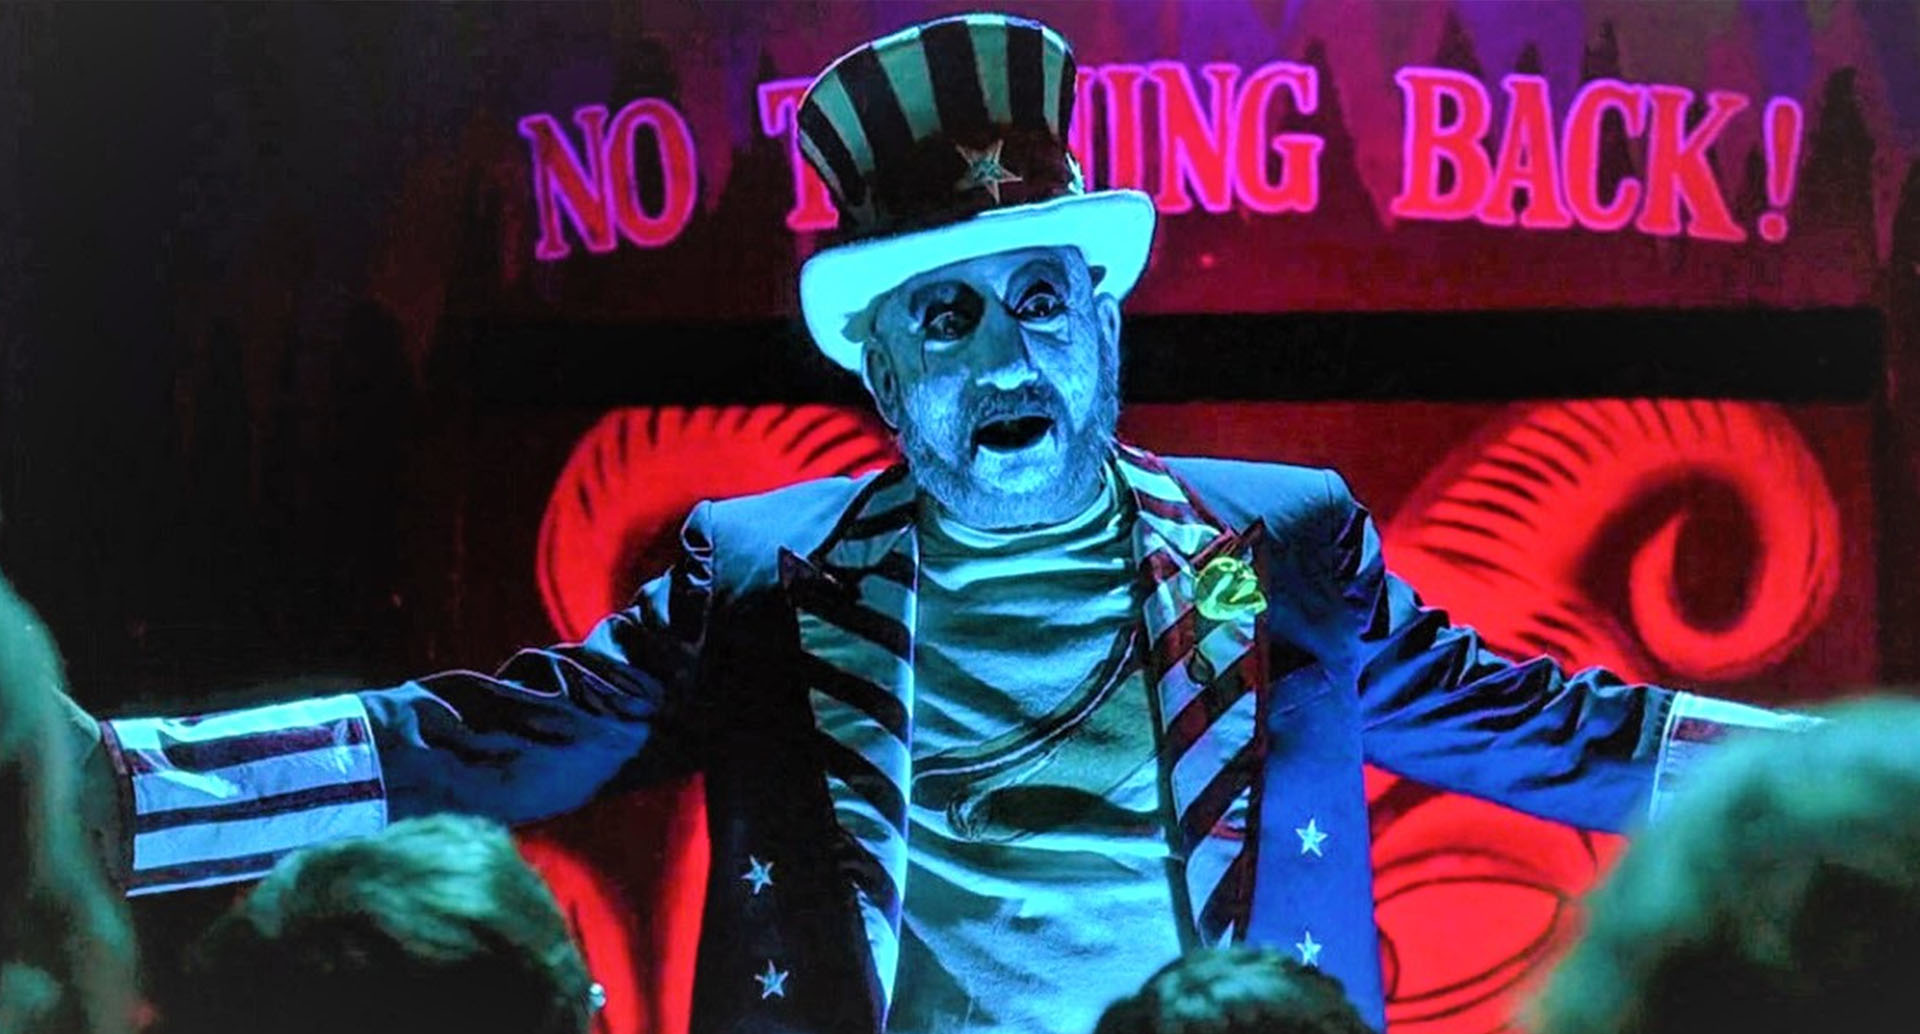 Actor Sid Haig best known as Captain Spaulding has died at age 80